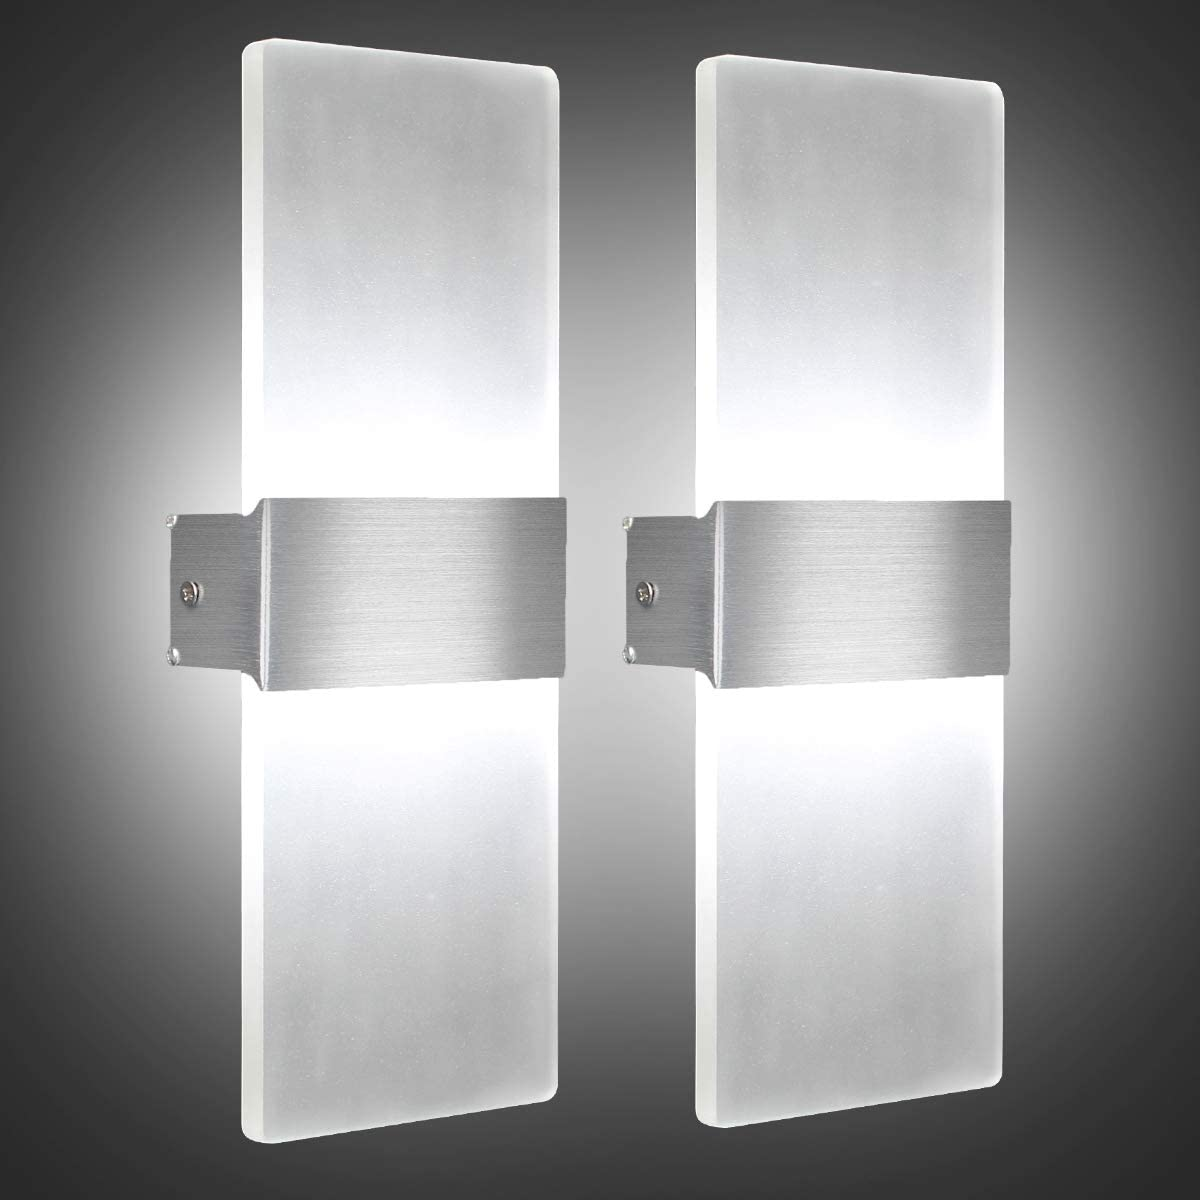 AUMIO Modern Elegant Wall Sconces Wall Lighting in 12W, Set of 2 LED Wall Lamp in Cool White, Acrylic 6000K Wall Mounted Wall Lights for Bedroom Hallway Living Room Porch Basement Stairway Decord